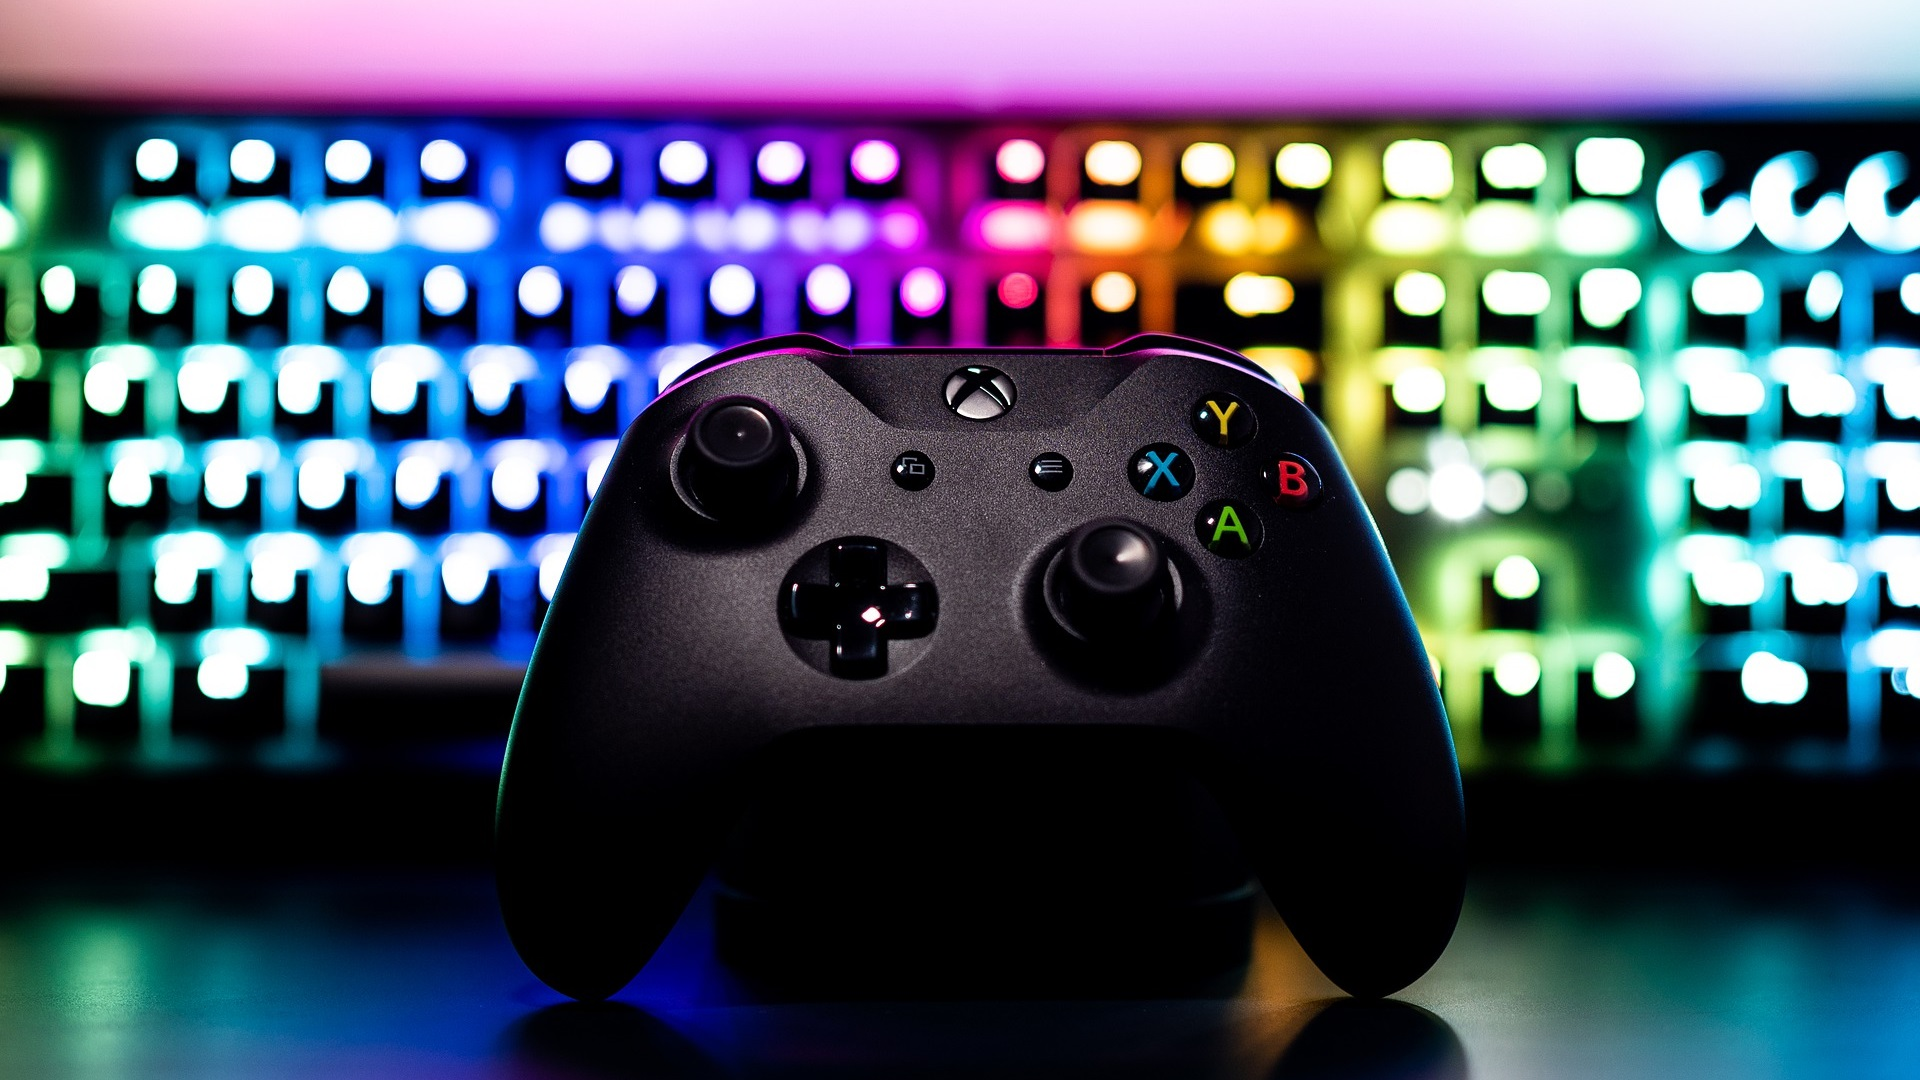 XBOX Controller in front of an RGB keyboard